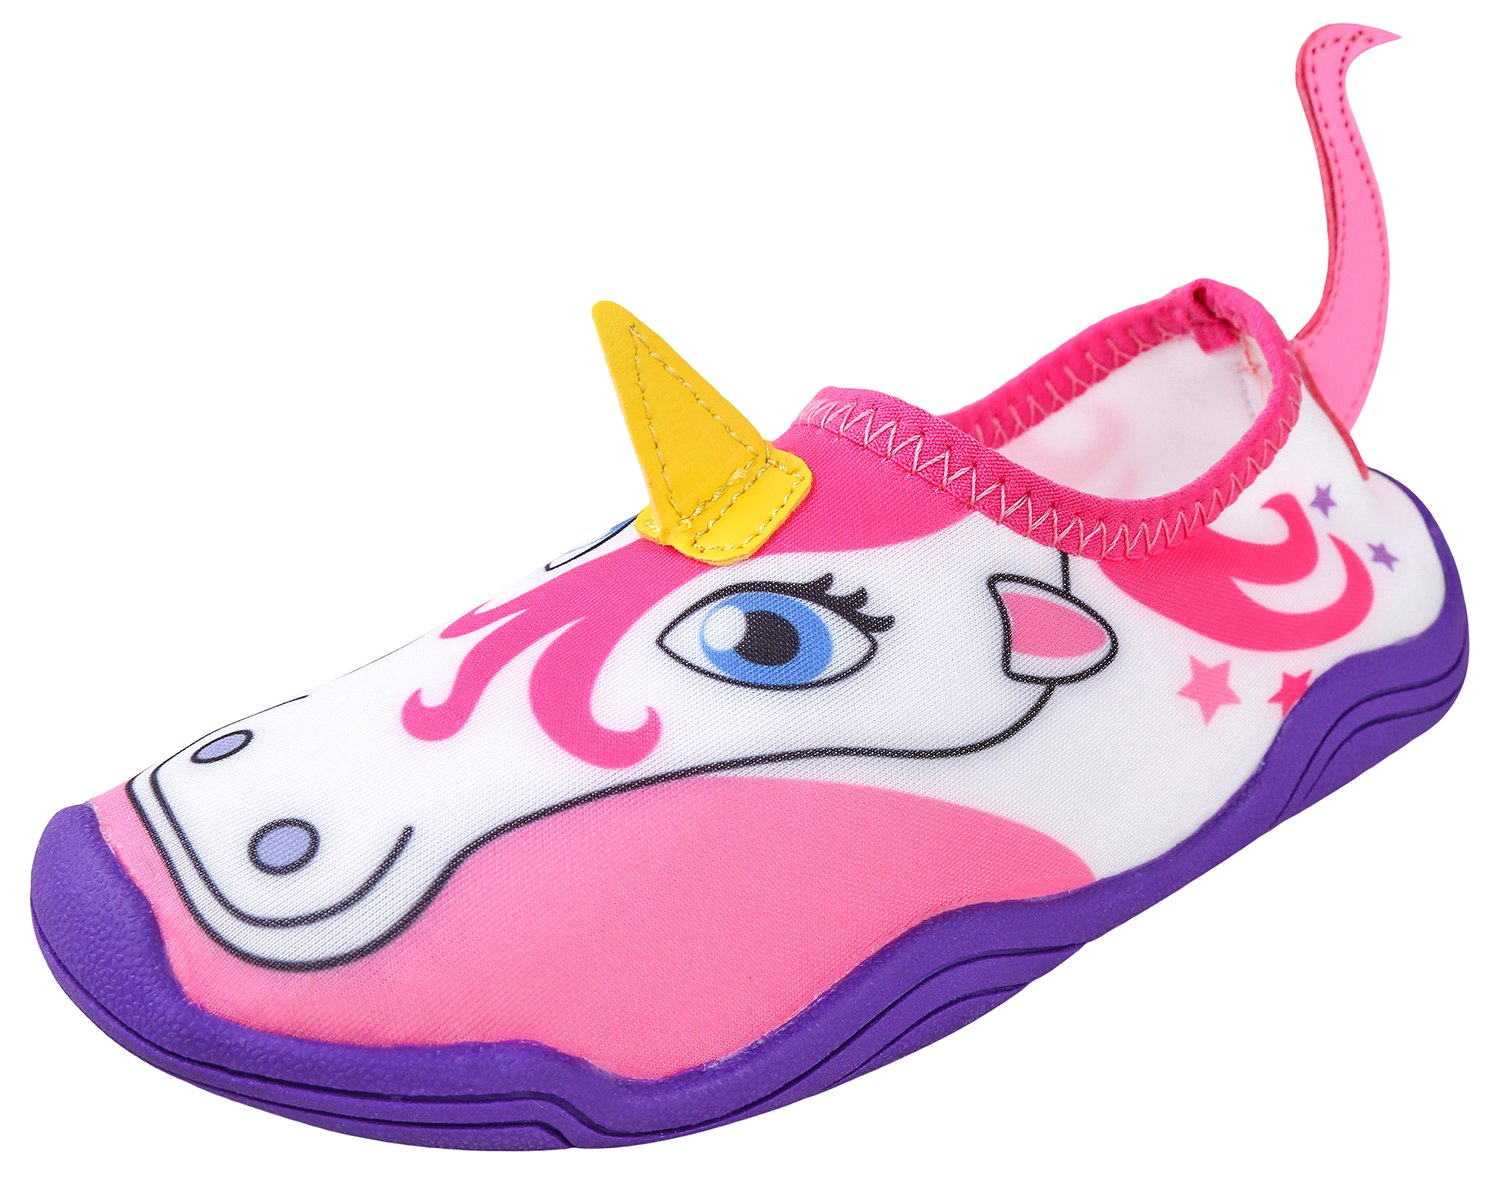 Lil' Fins Water Pals Kid Shoes | Beach | Summer Fun | Water Shoes | Quick Dry | Swim Shoes | Unicorn 2D/3D Horn 10/11